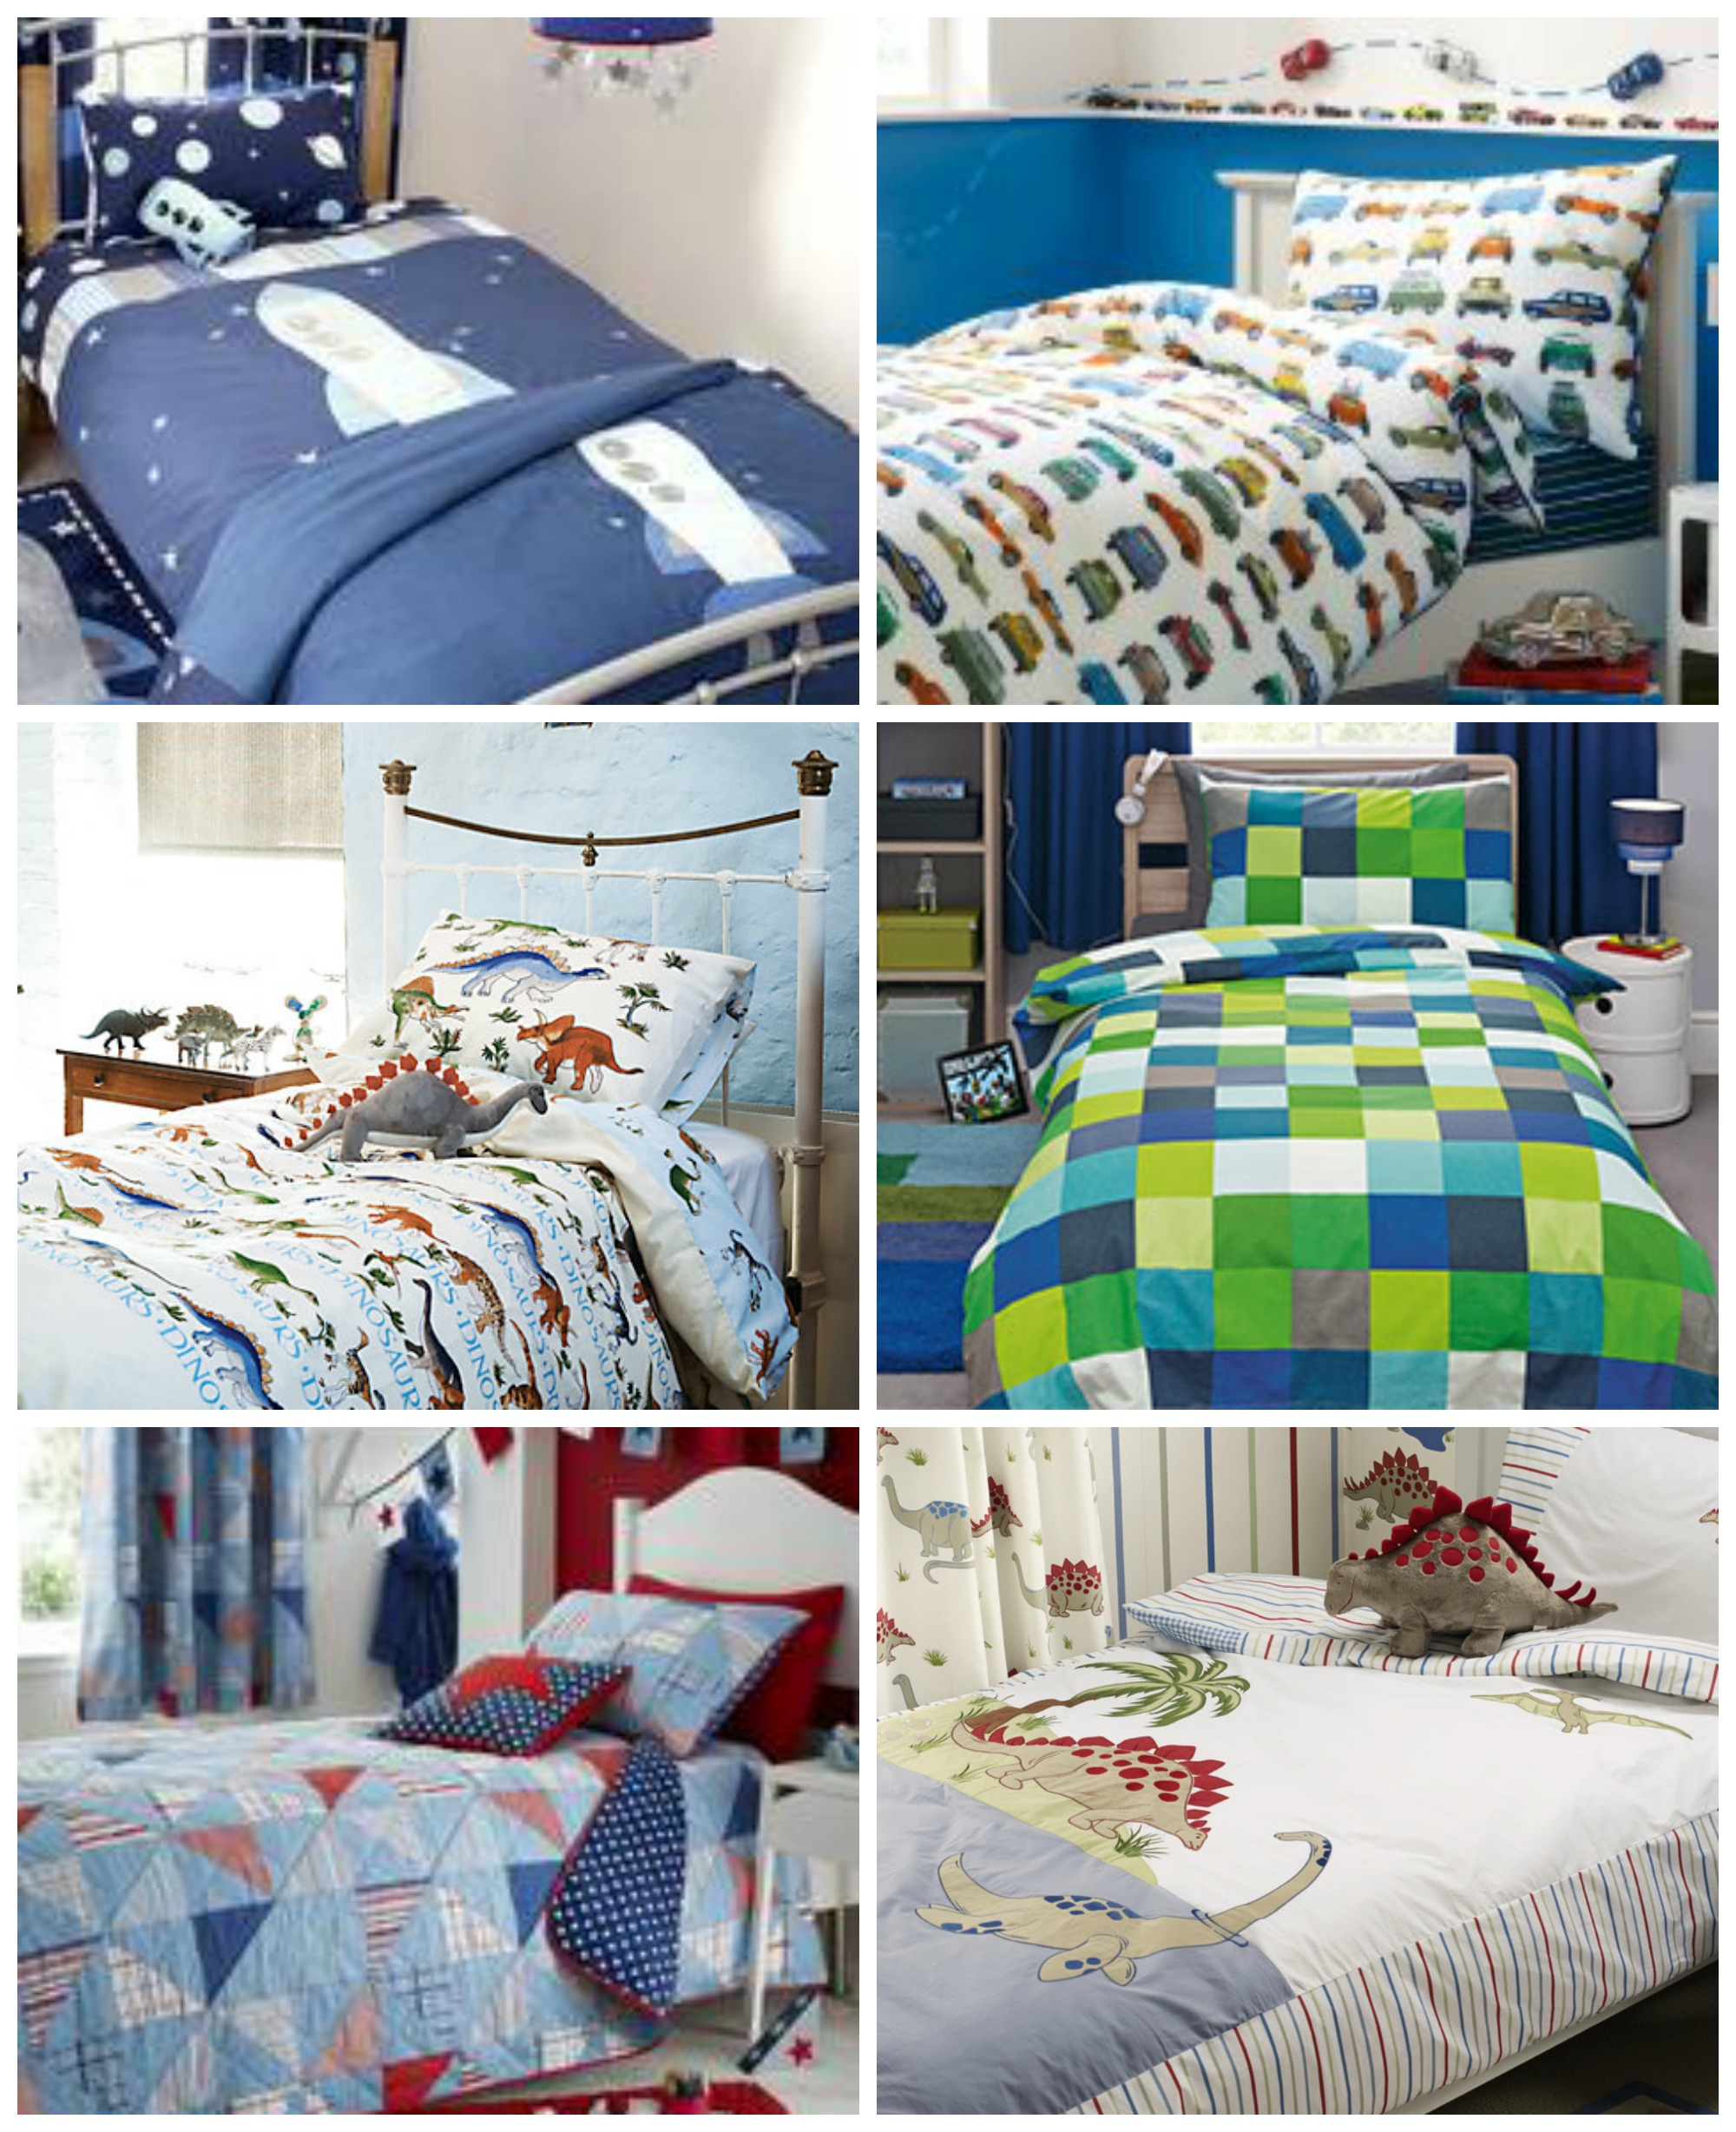 Bedding inspiration - clockwise from top left: 1. Space mission duvet set, £19.99, Dunelm;  2. Vintage car bed set, £20, Next; 3. Pixel print bedding, from £15, Next; 4.Dinosaur bedding, £55, Laura Ashley; 5. Patchwork bed linen collection, £6.99-£49.99, Dunelm; 6. Emma Bridgewater dinosaur single duvet cover and pillowcase, £30, John Lewis